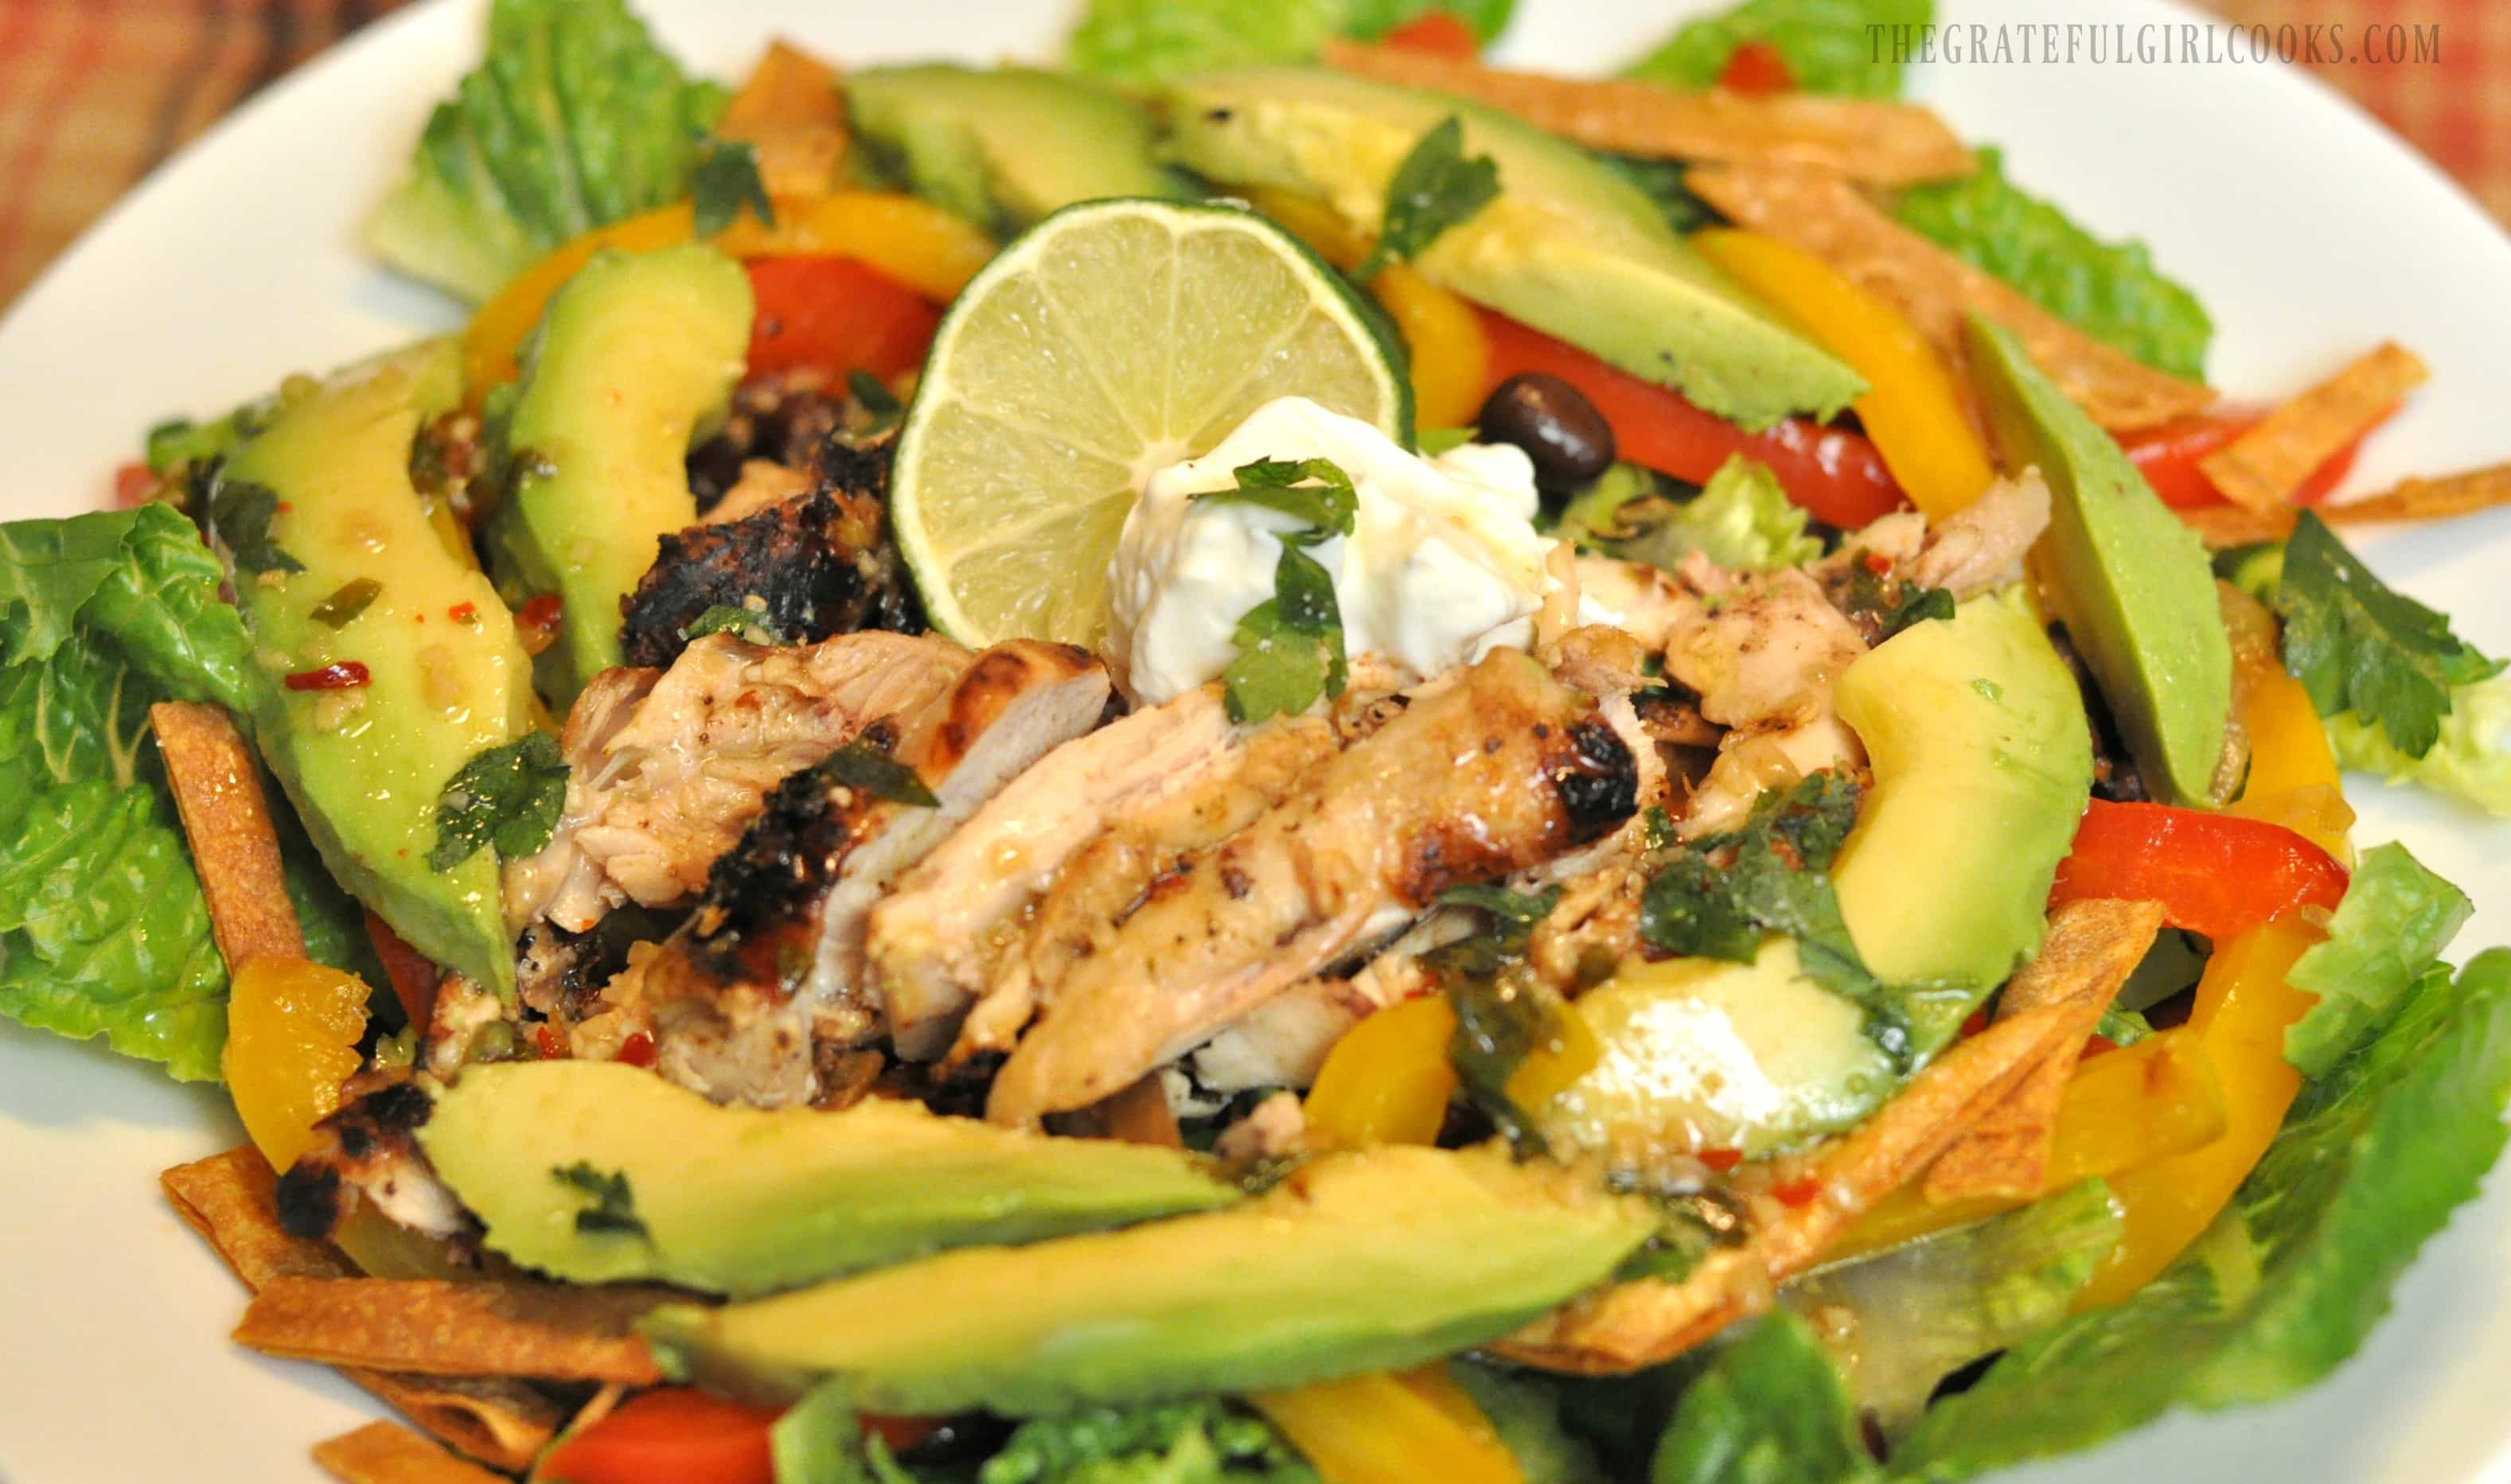 Grilled Chili & Lime Chicken Fajita Salad / The Grateful Girl Cooks!